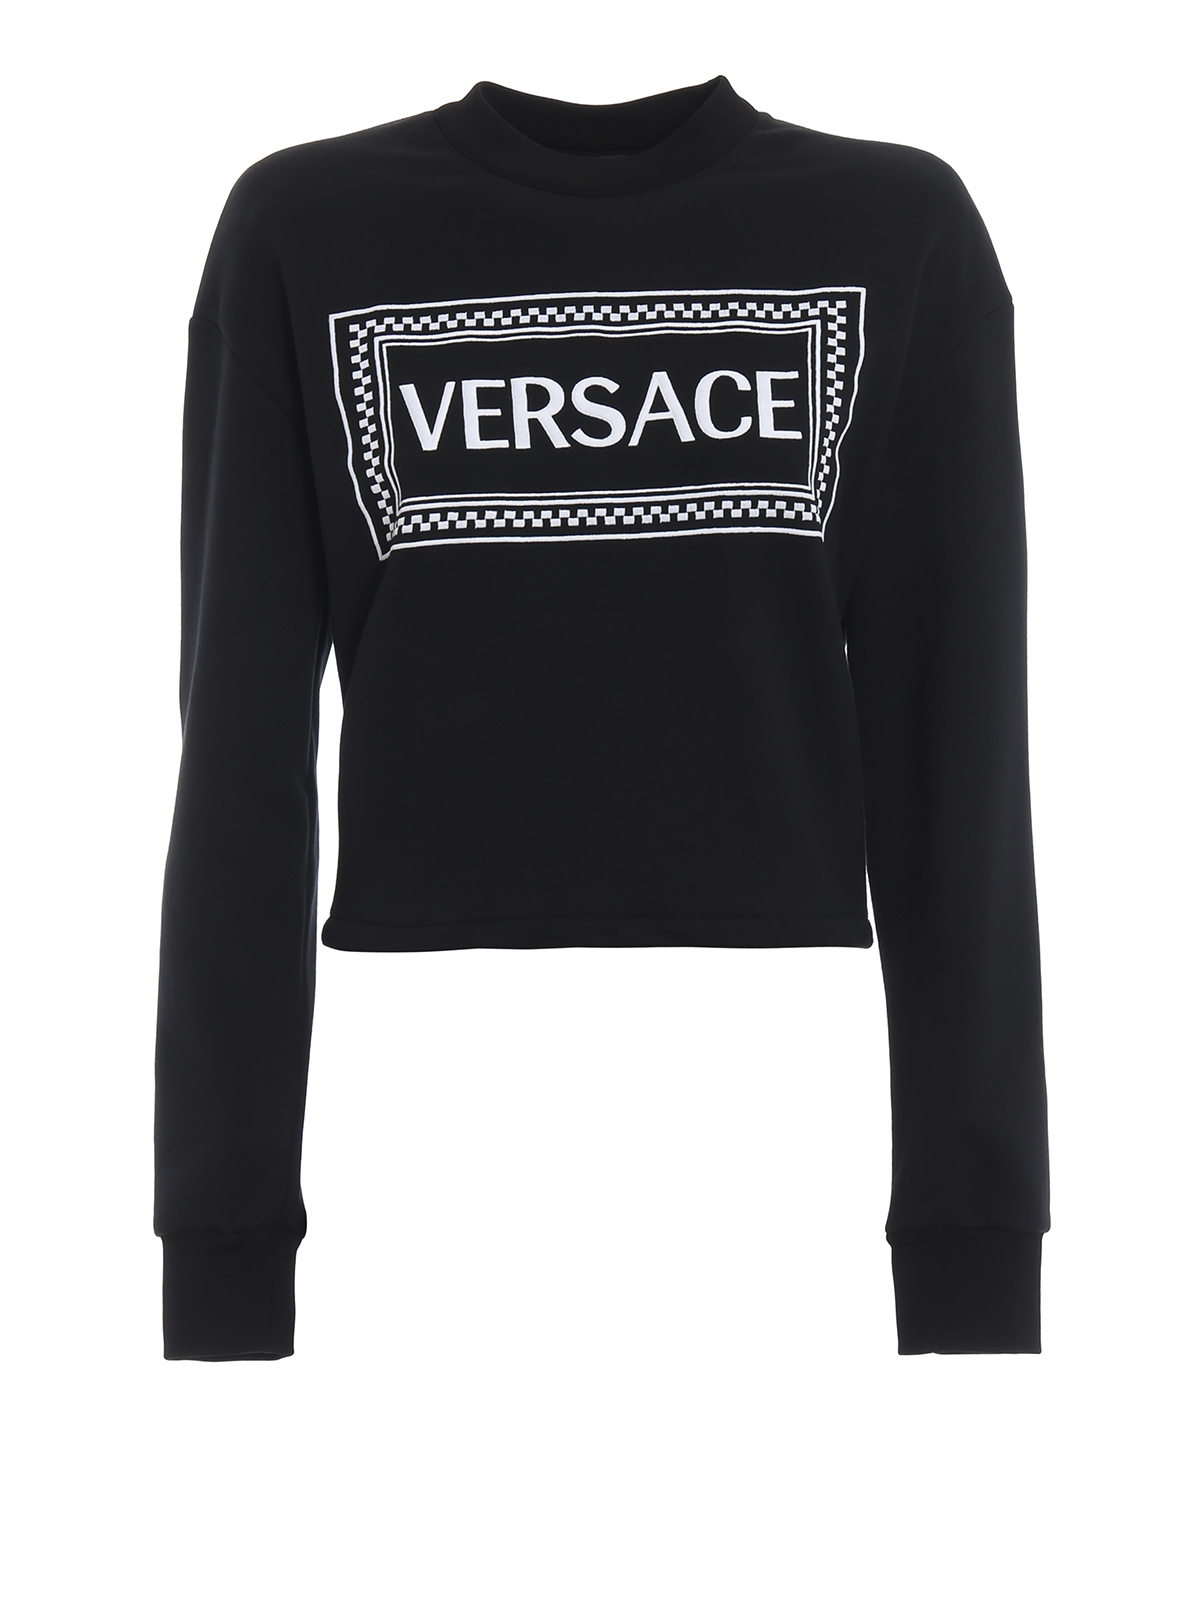 a2ace4a2891 VERSACE  Sweatshirts   Sweaters - Versace 90s Vintage logo cropped  sweatshirt